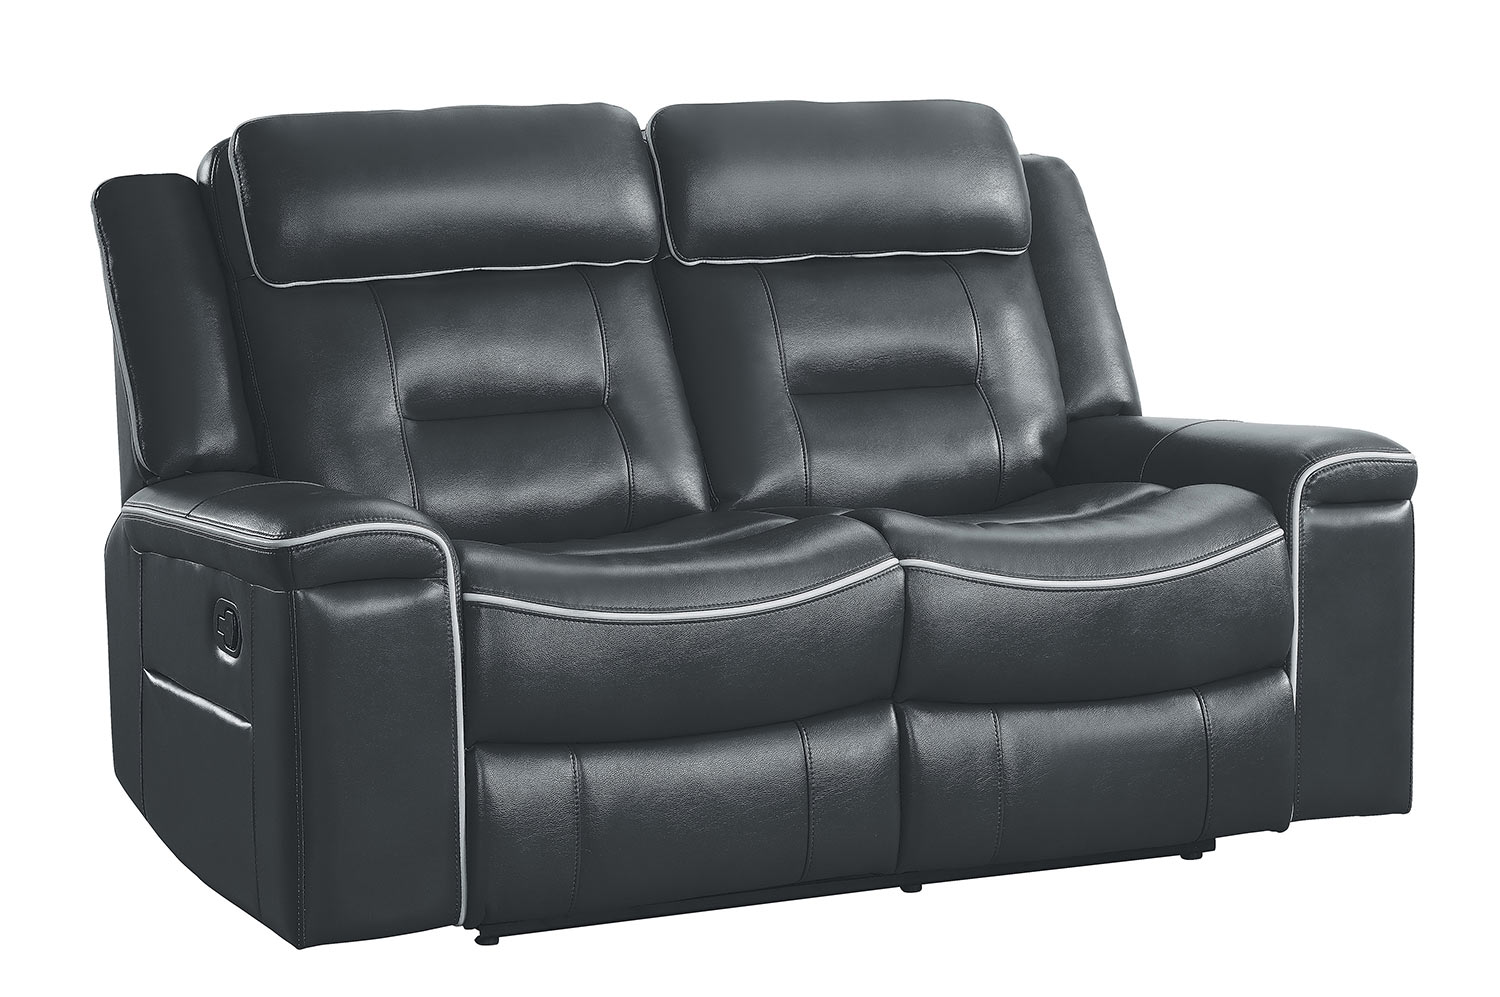 Homelegance Darwan Double Lay Flat Reclining Love Seat - Dark Gray